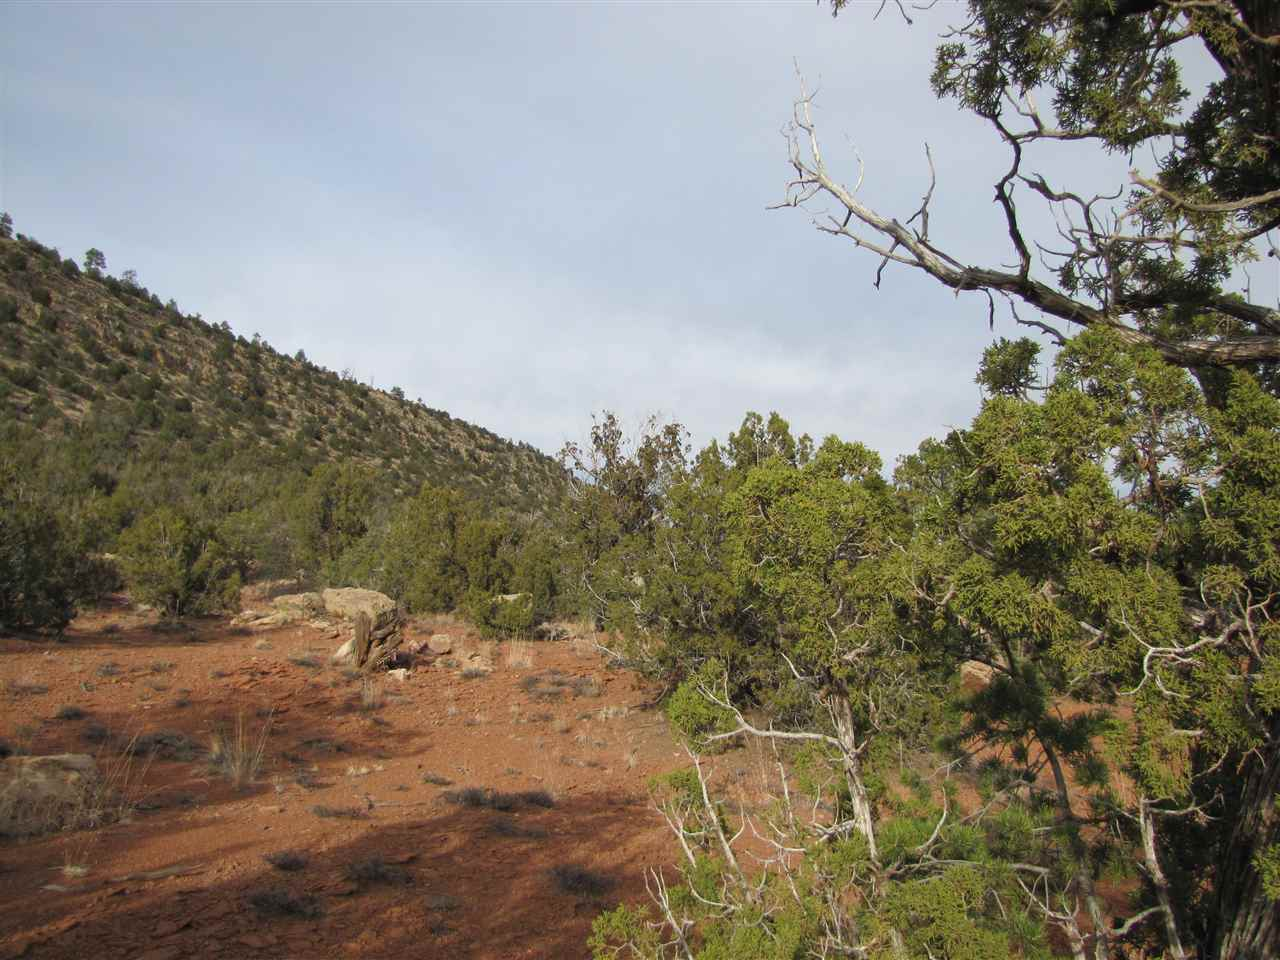 Tracts 6A1&6A2 SMCR B31A Gonzales Ranch Ribera, NM 87560